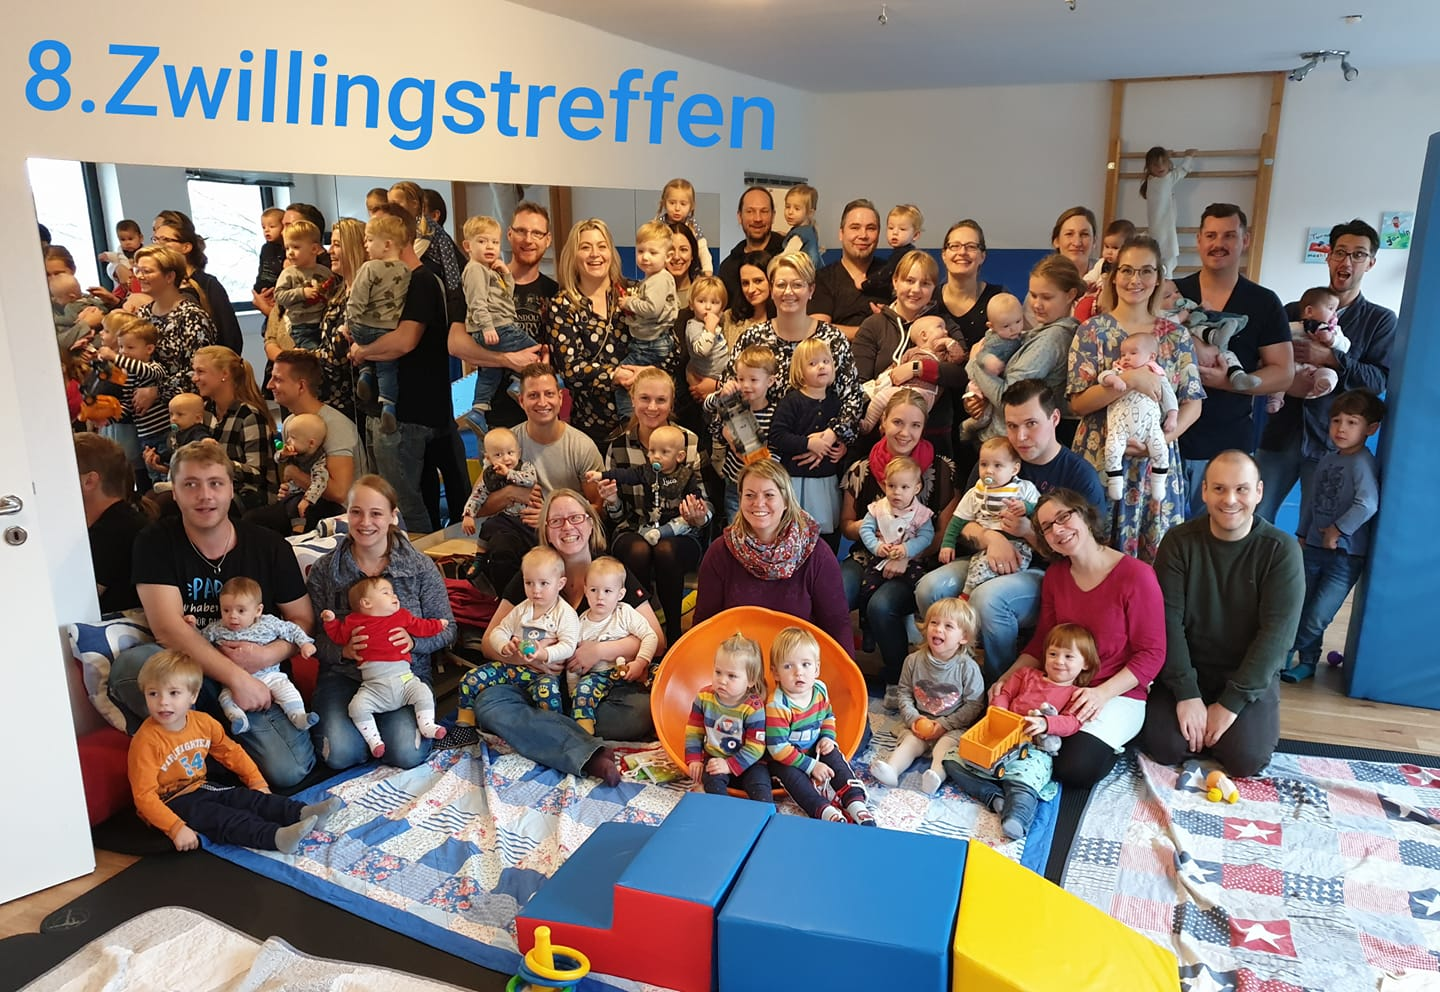 Zwillingstreffen November 2019